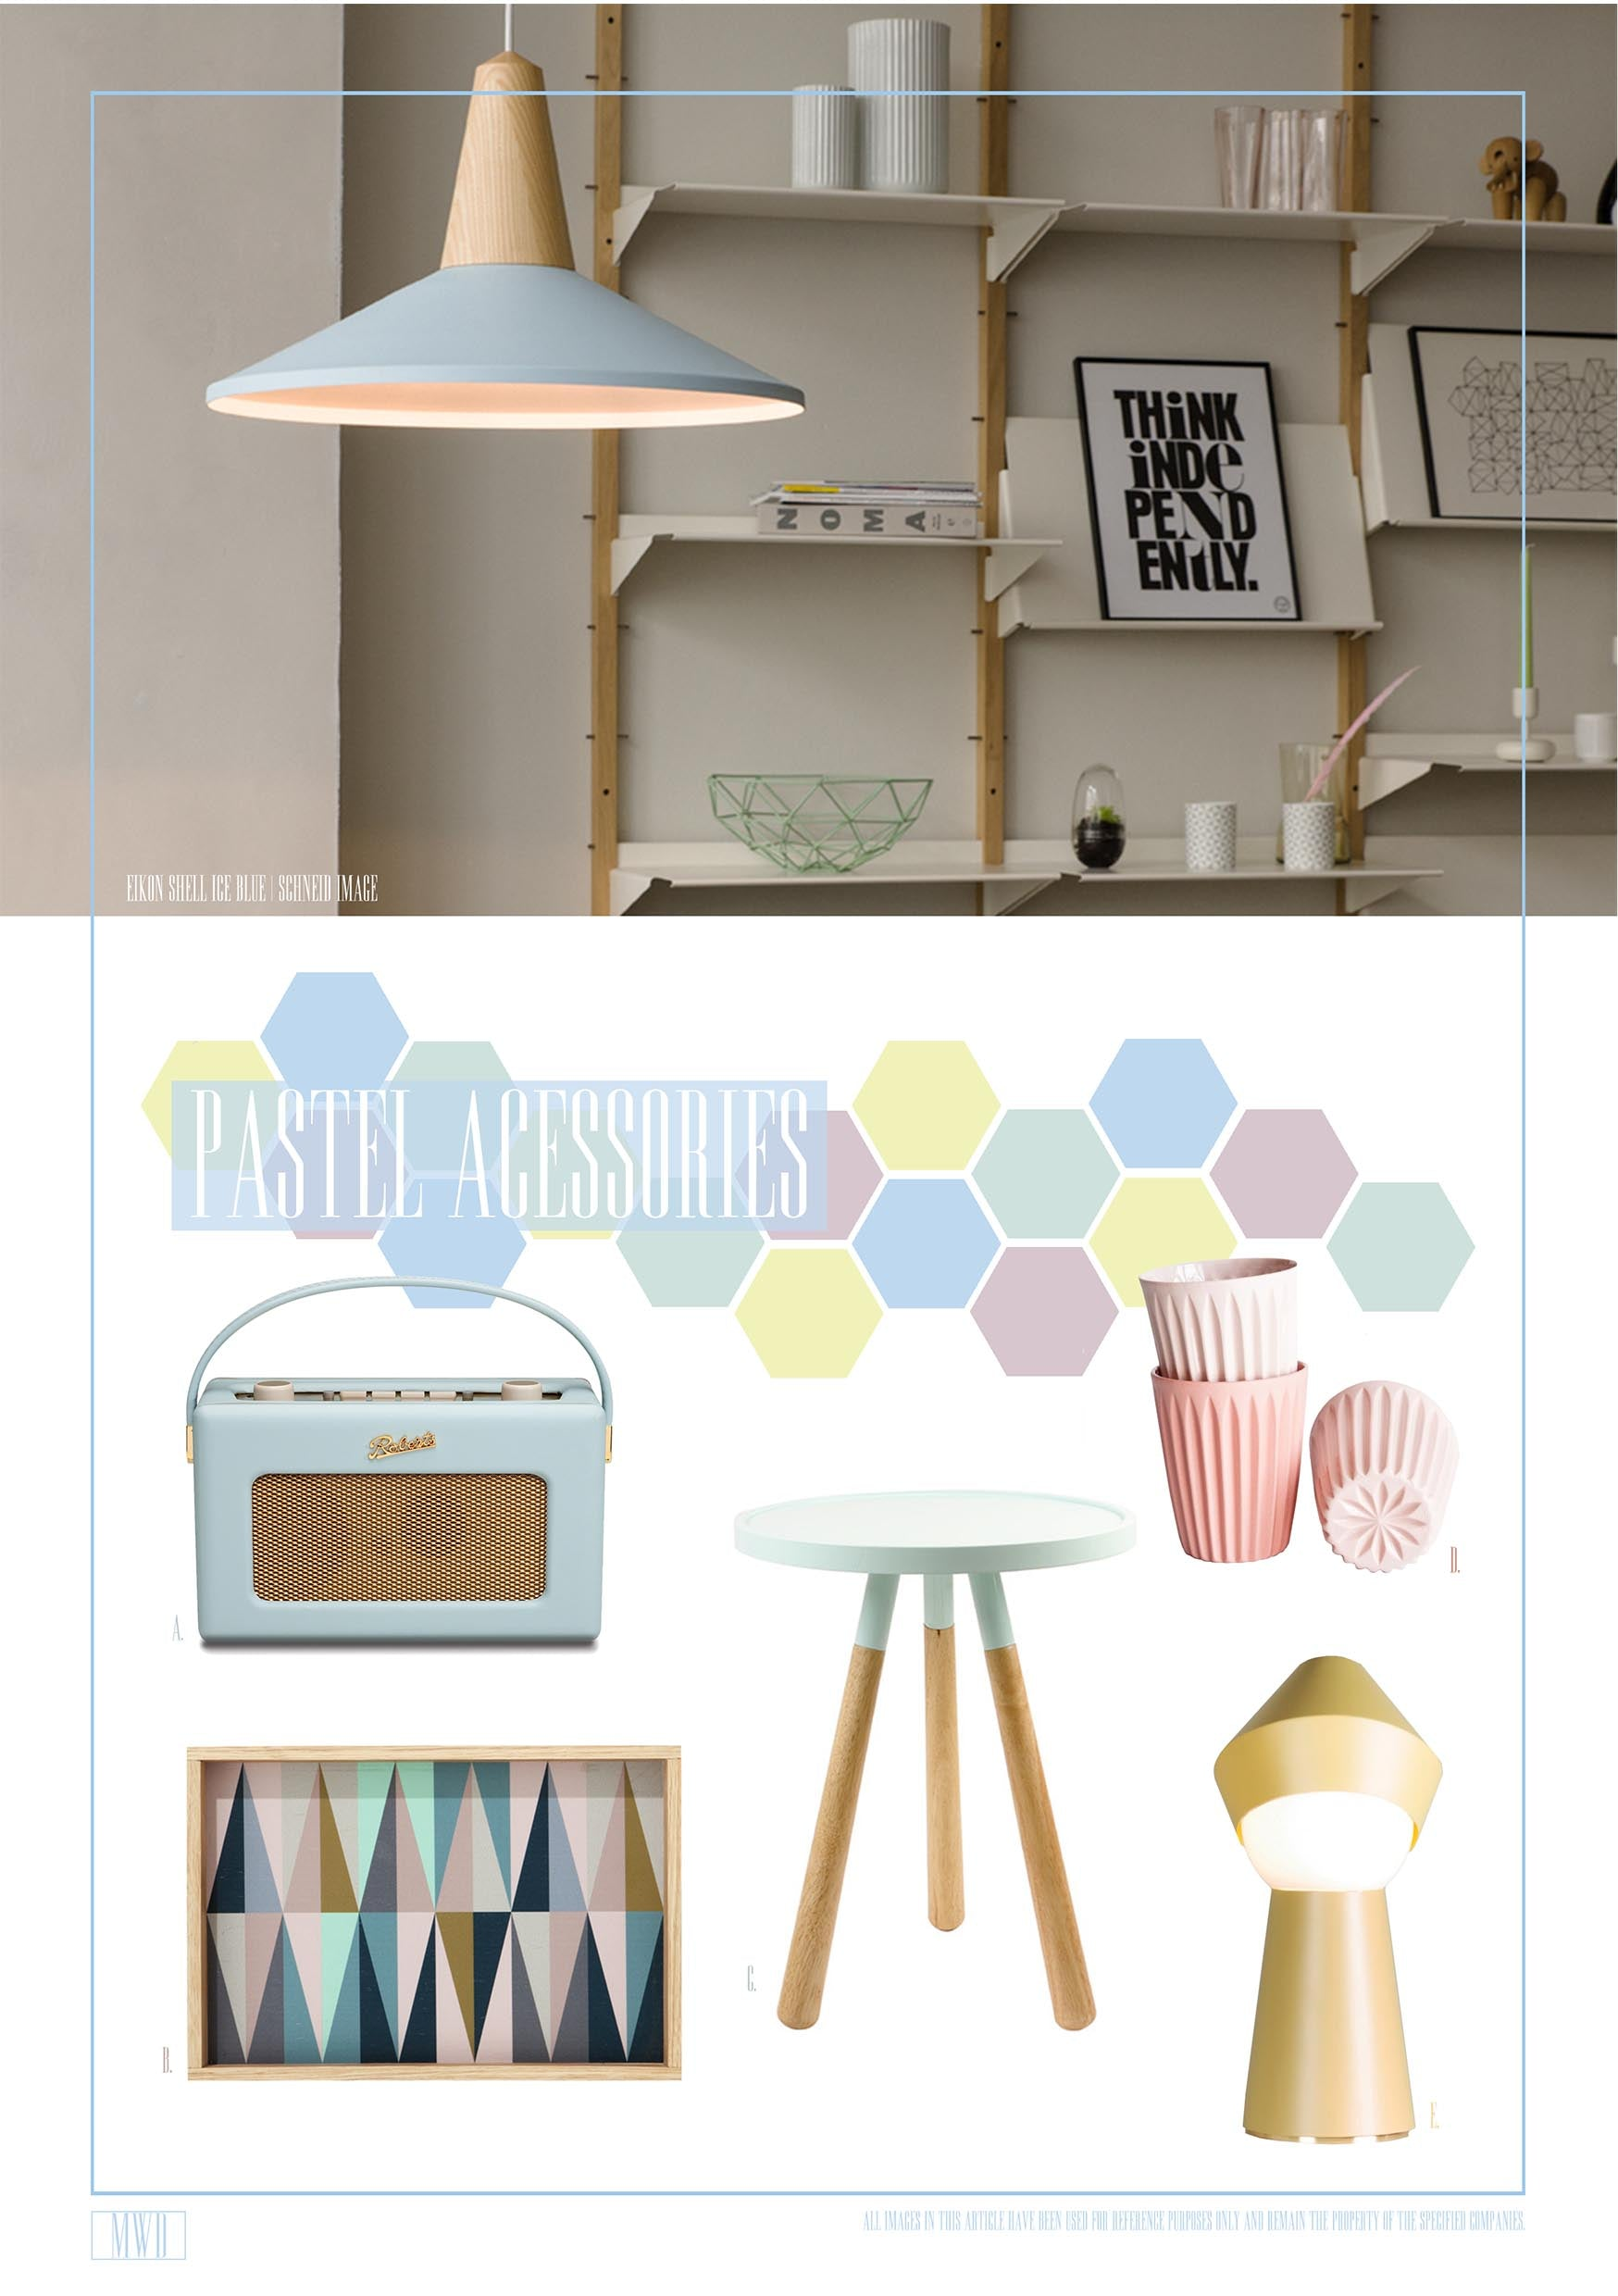 Pastel home accessories and appliances inspiration